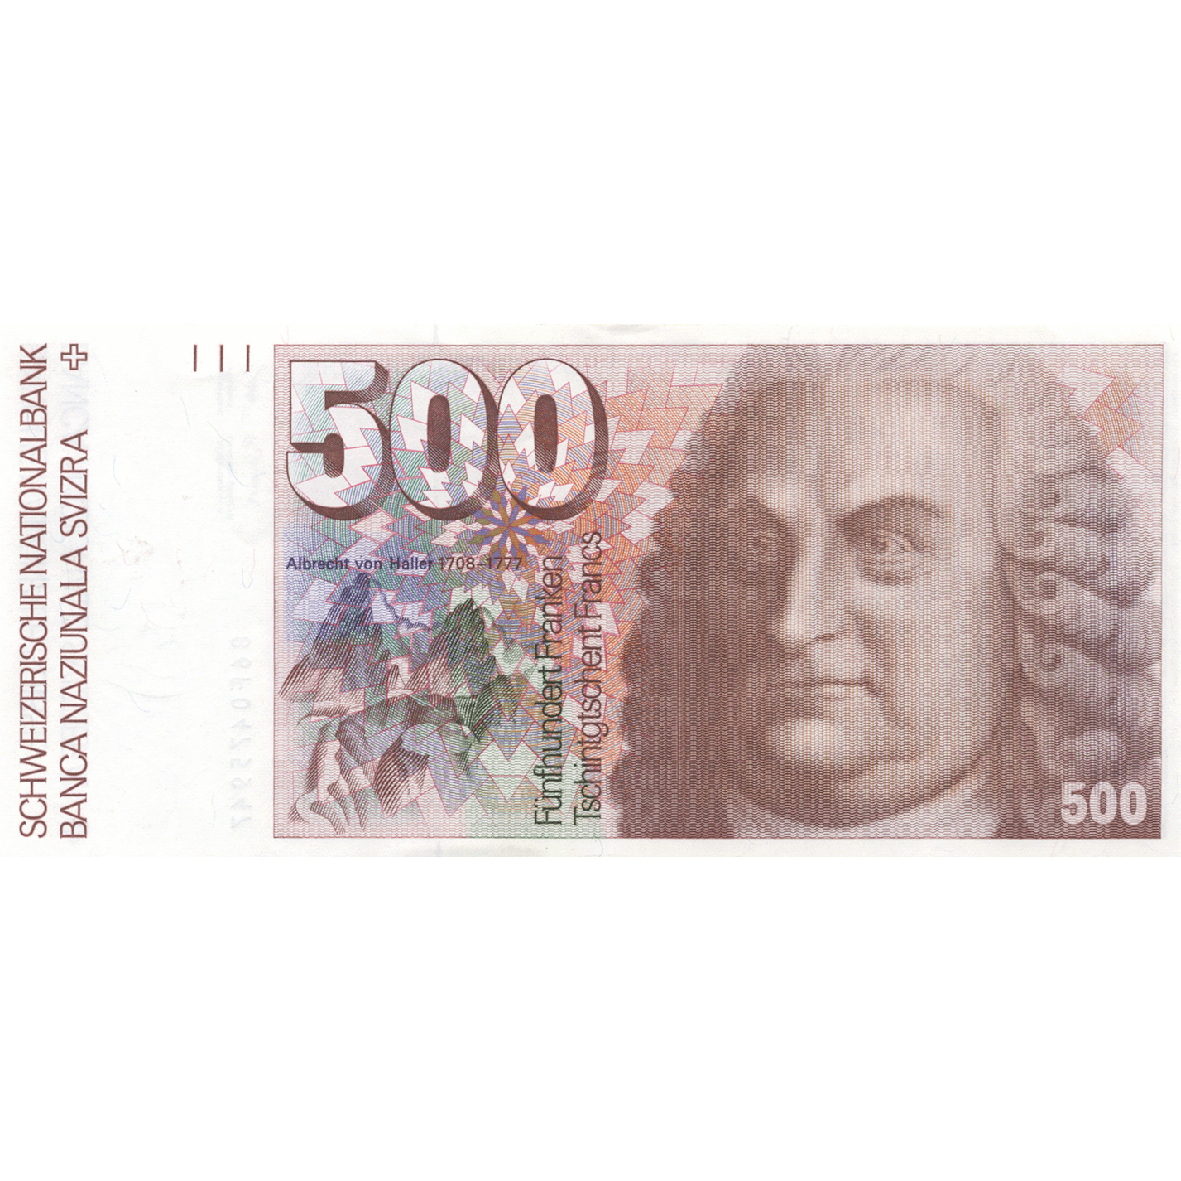 Swiss Confederation, 500 Francs (6th Banknote Series, in Circulation 1976-2000) (obverse)